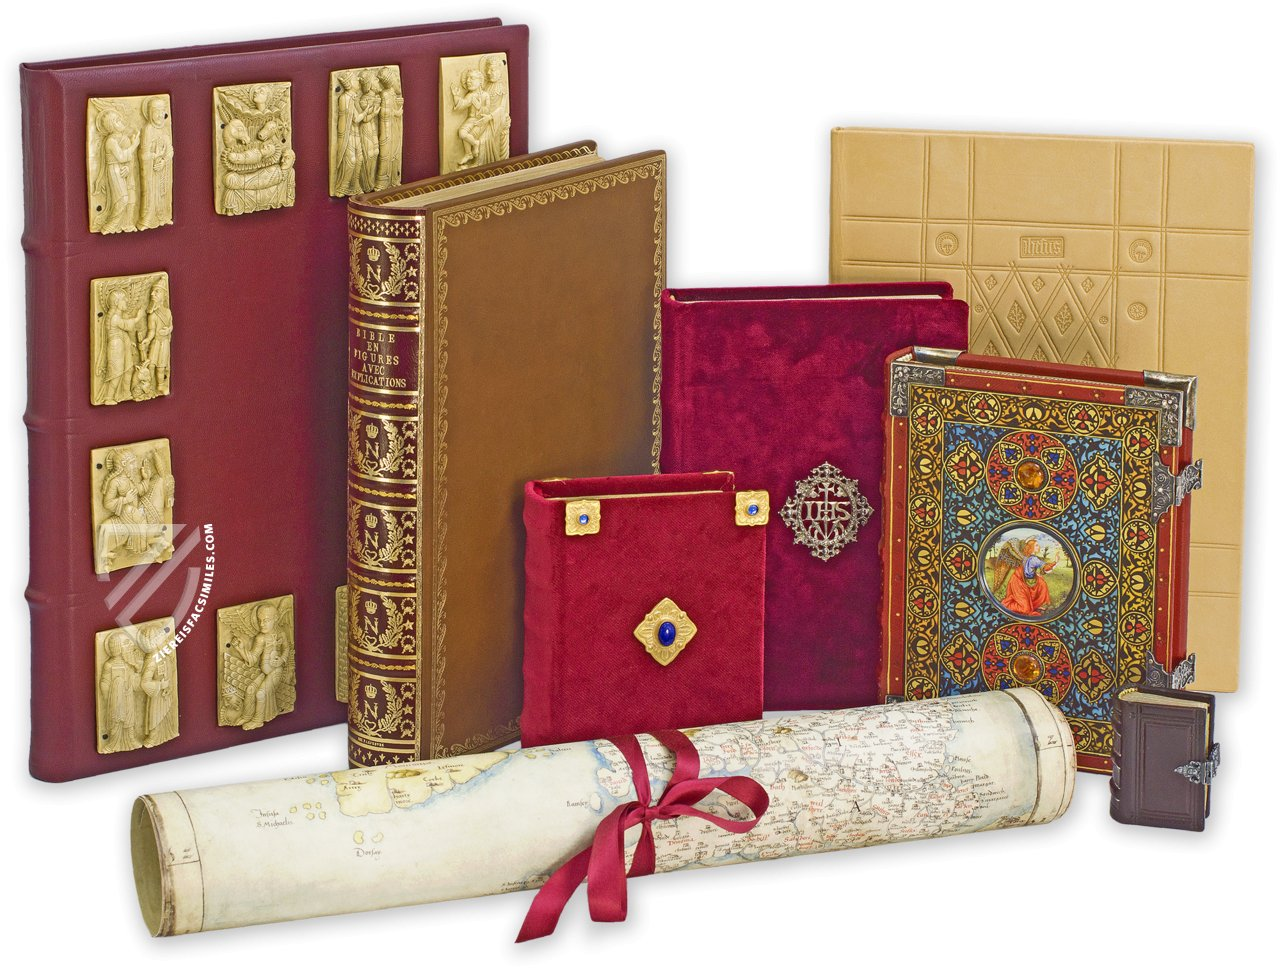 September Bible (Luxury Edition)